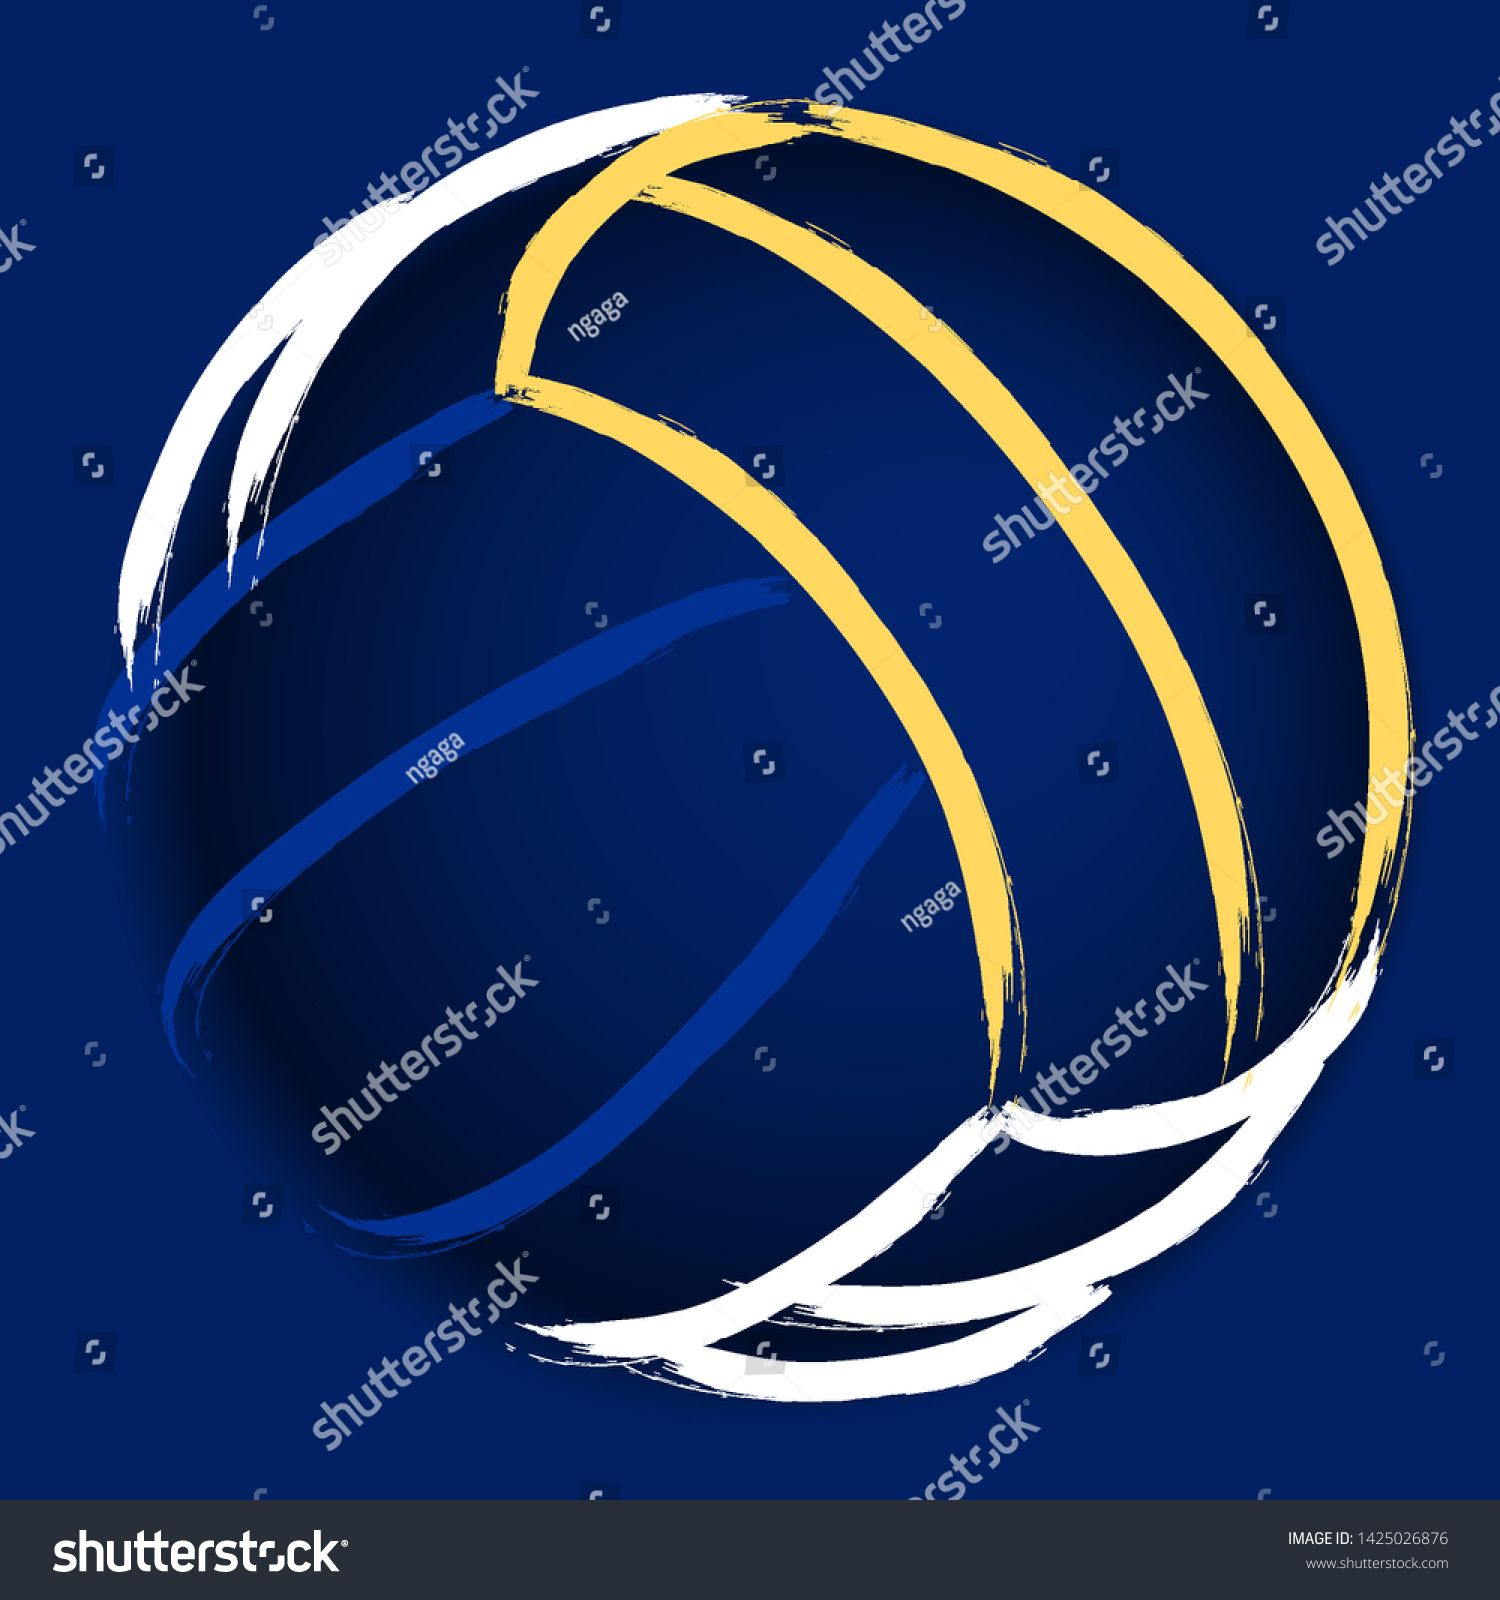 Stylized Illustration Hand Drawing Of A Volleyball Background Sport Vector Ad Spon Hand Drawing Styliz In 2020 How To Draw Hands Stylized Volleyball Backgrounds